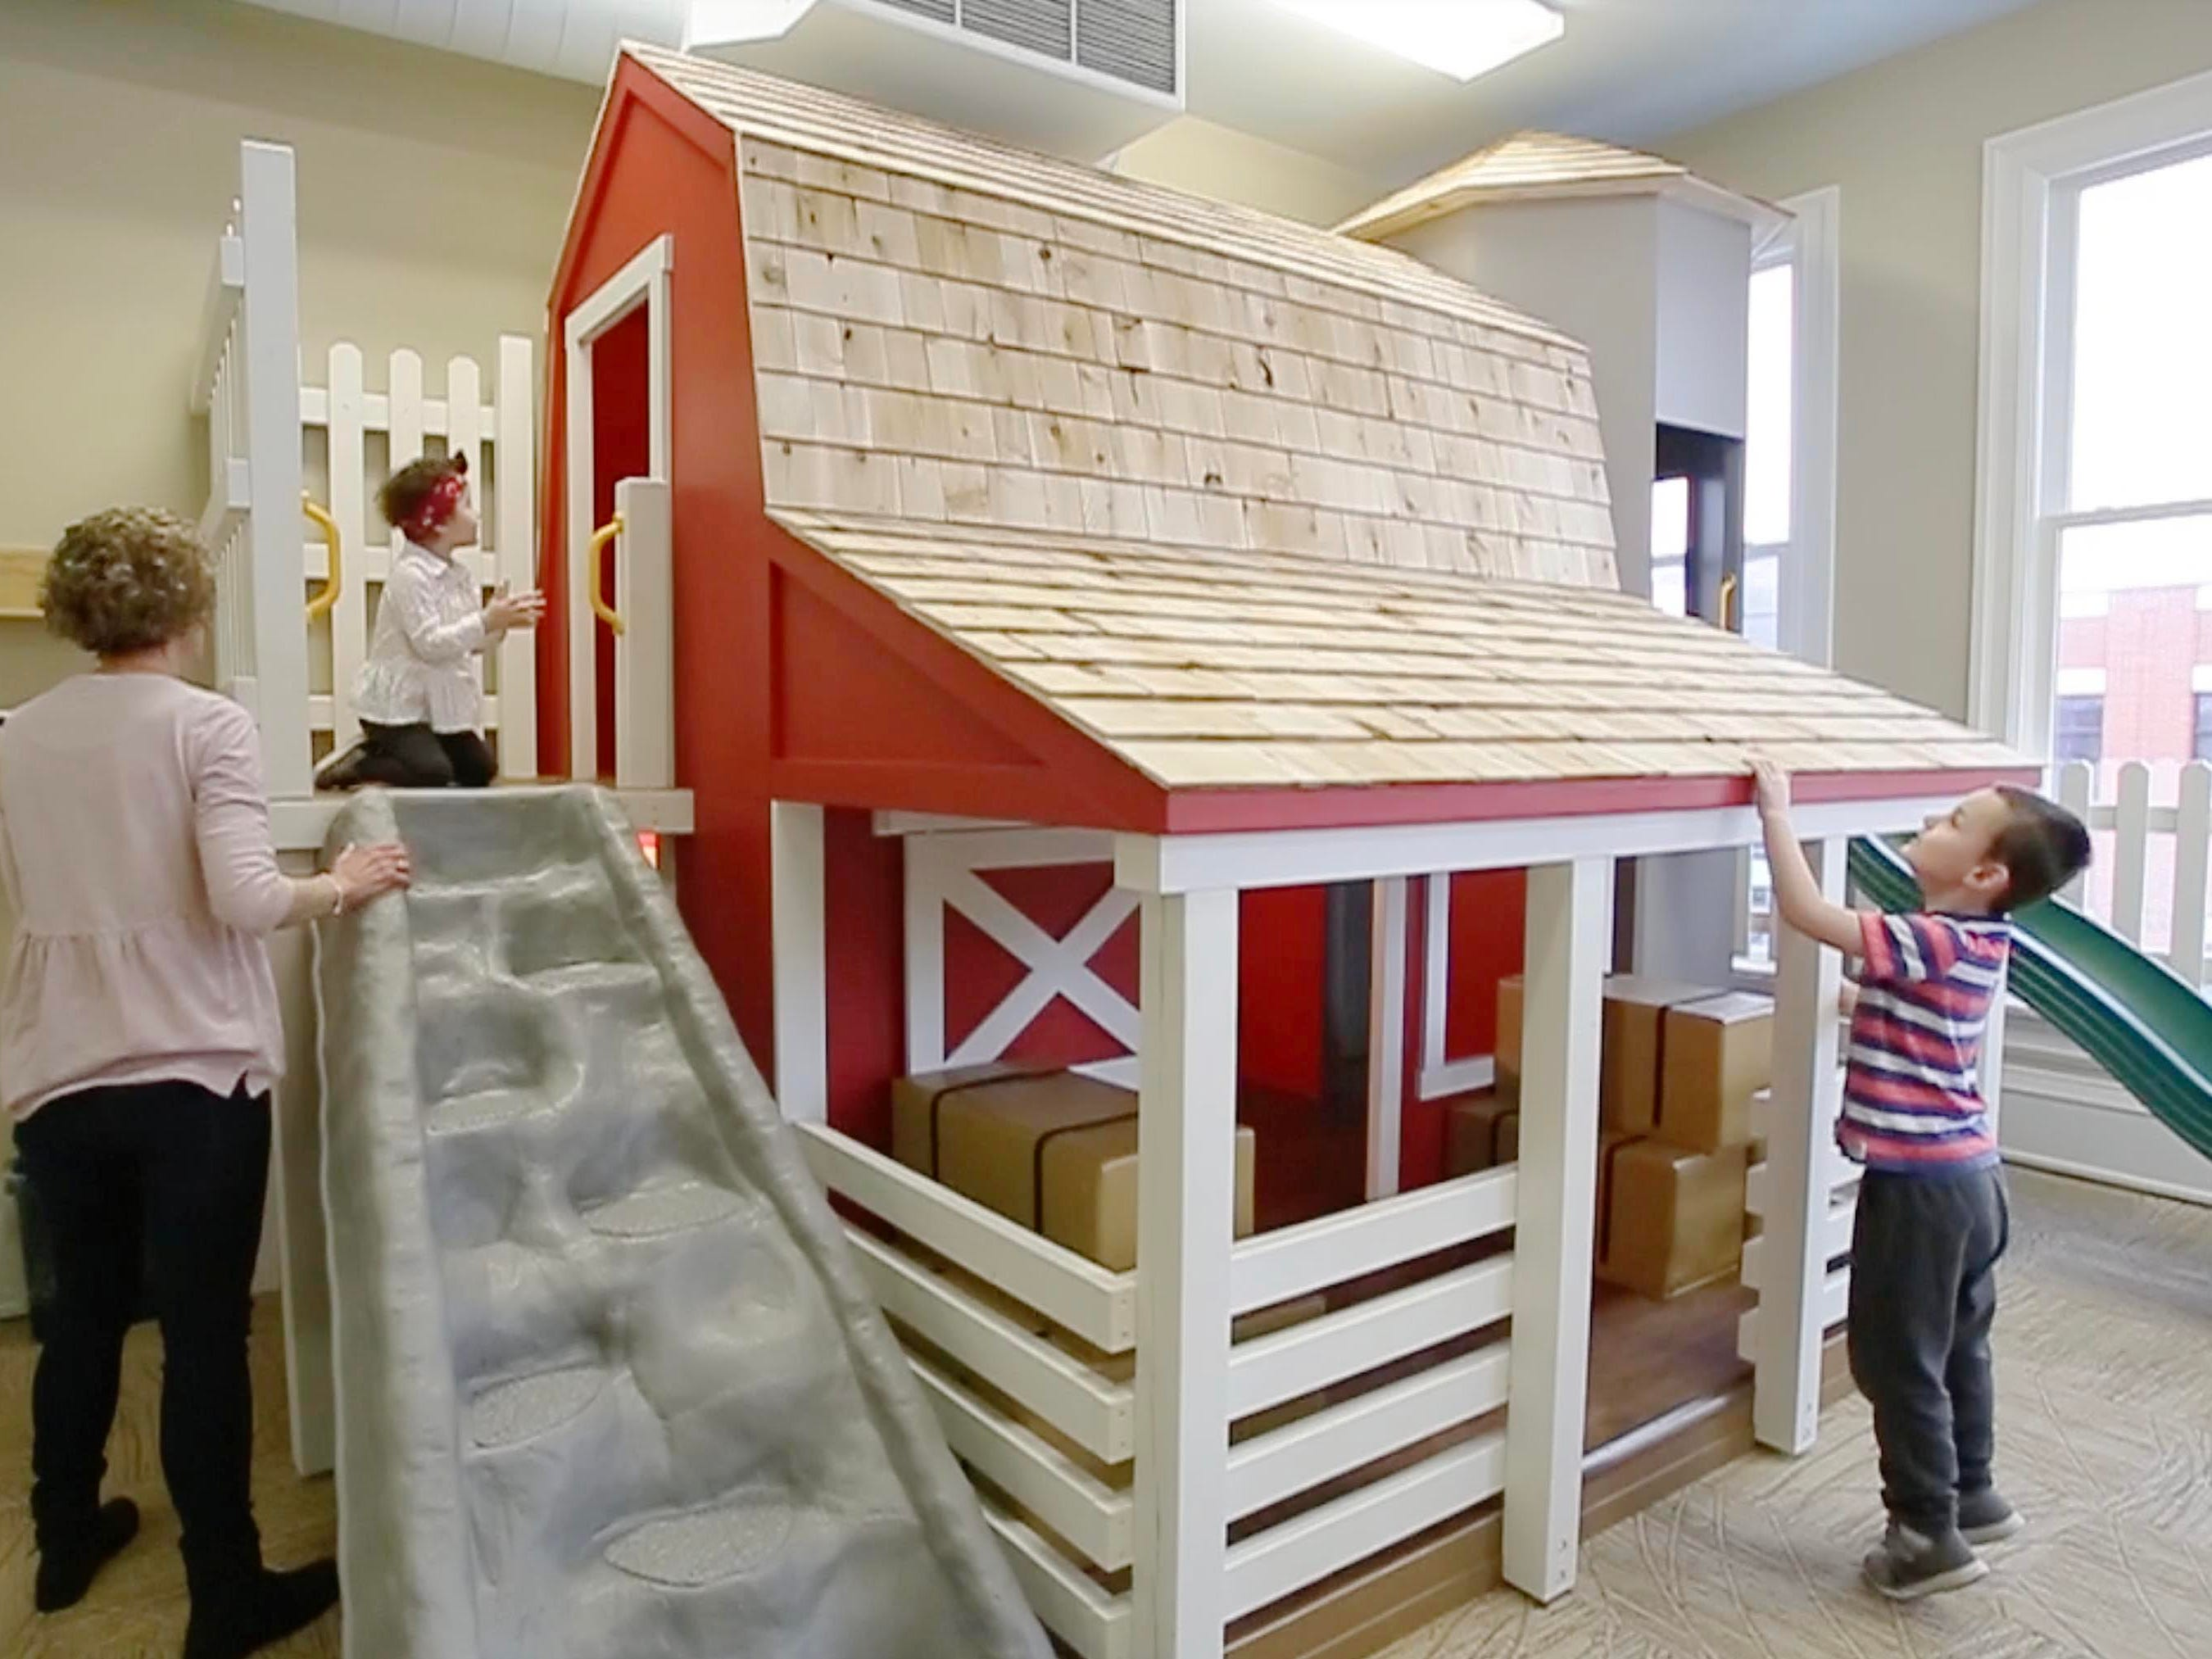 Youngsters inspect the new Toddler Barnyard at the Above and Beyond Children's Museum, Saturday, February 23, 2019, in Sheboygan, Wis.